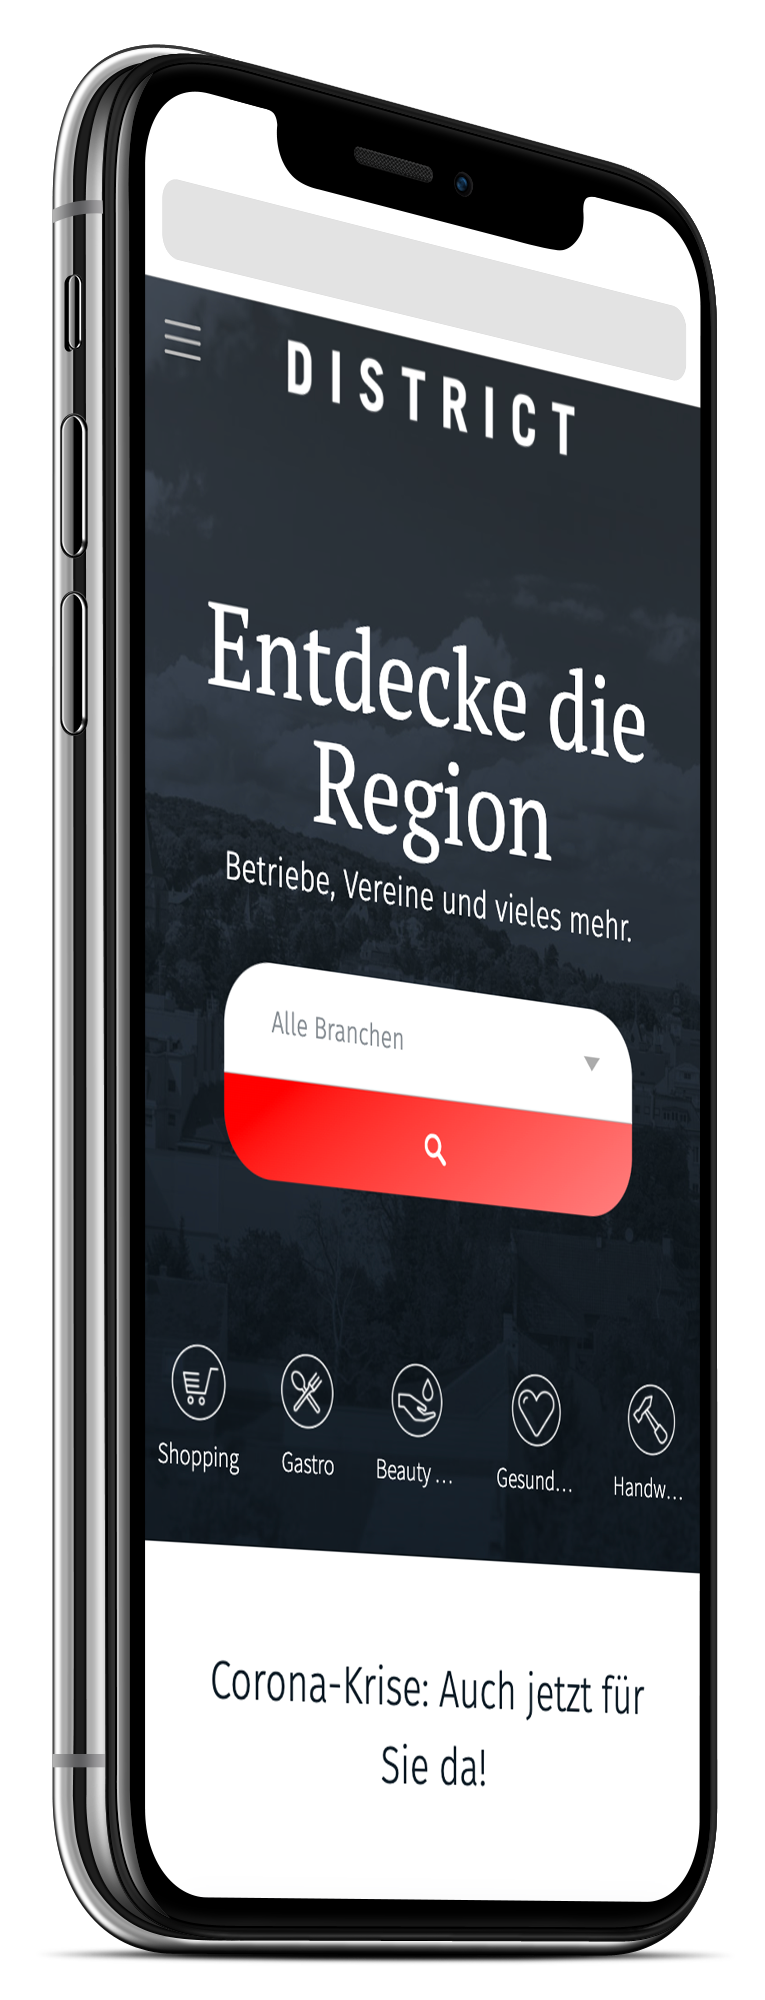 District - Entdecke die Region